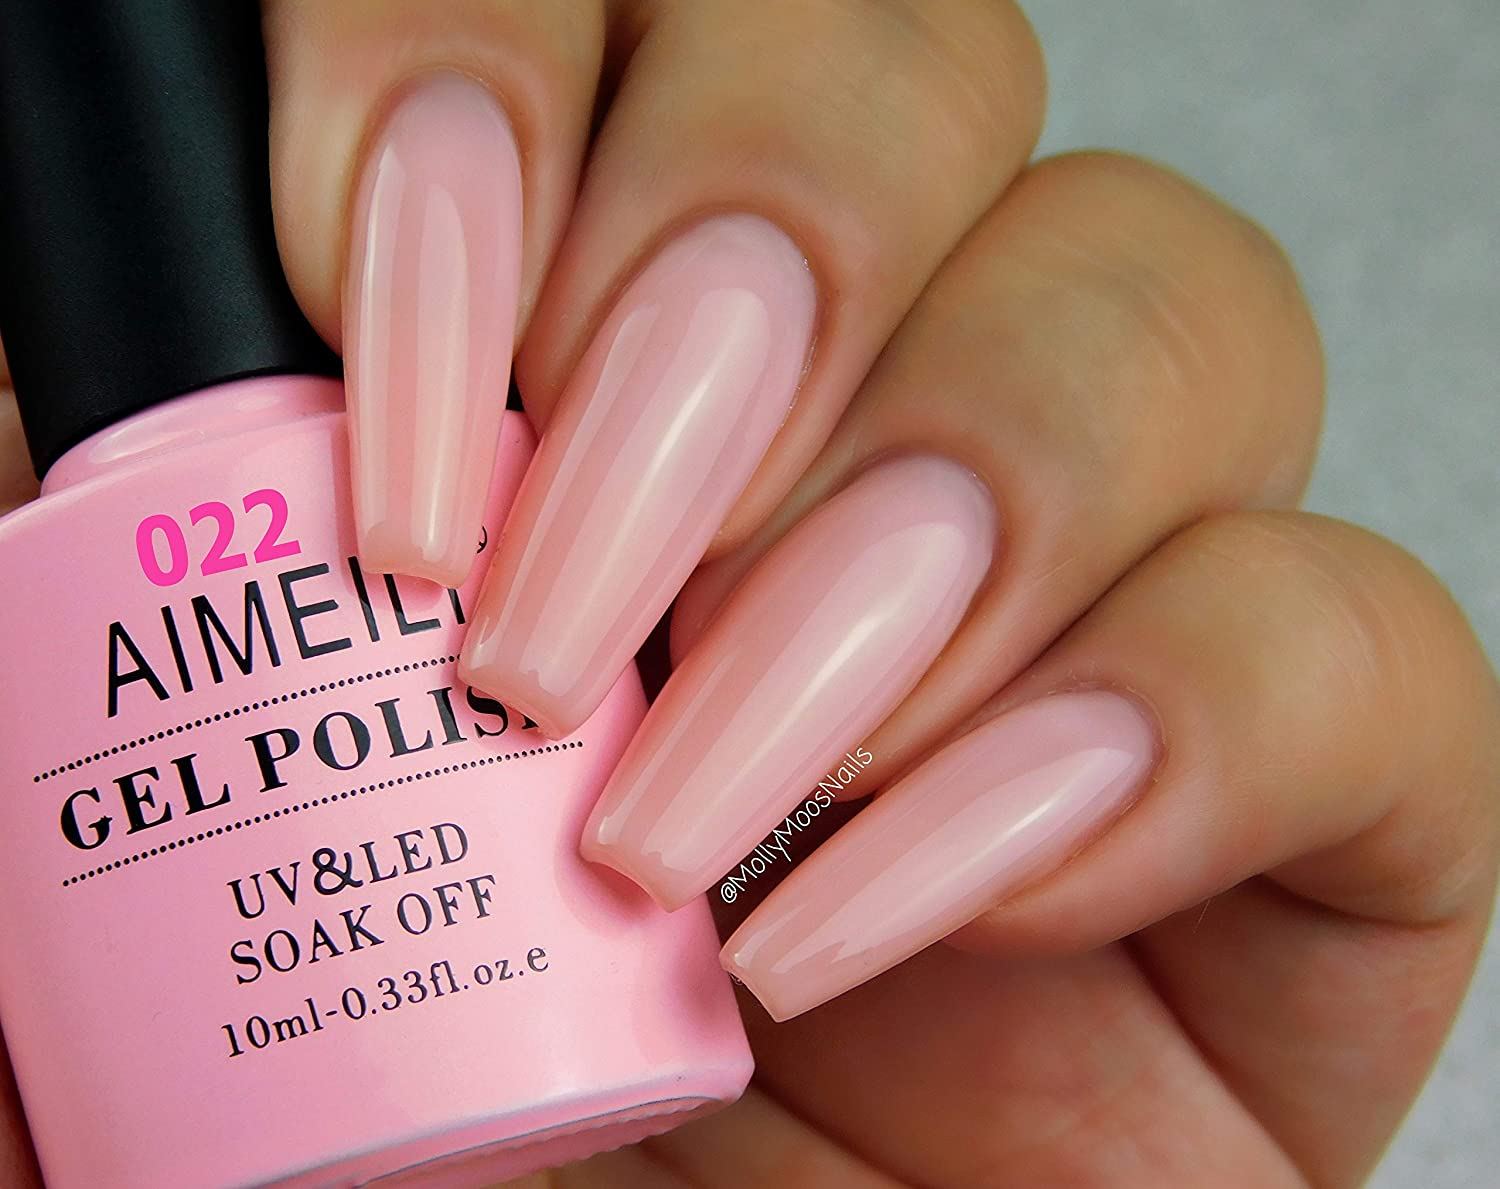 Aimeili Soak Off Uv Led Vernis à Ongles Gel Semi Permanent Pink Gel Polish Rose Nude 022 10ml